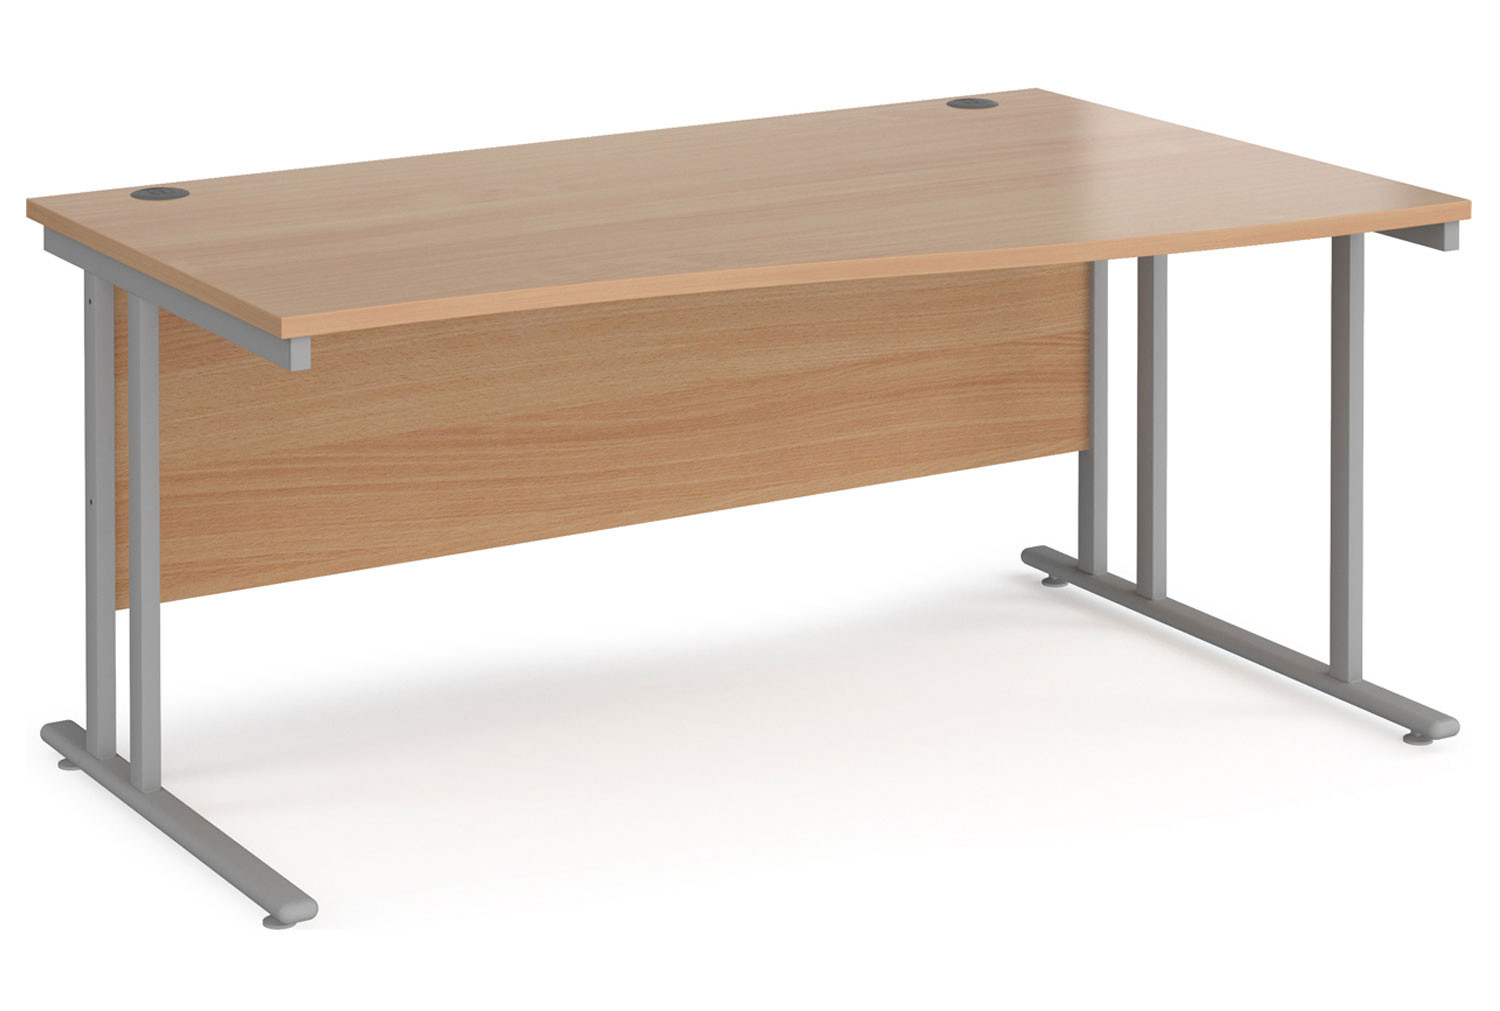 Value Line Deluxe C-Leg Right Hand Wave Desk (Silver Legs)